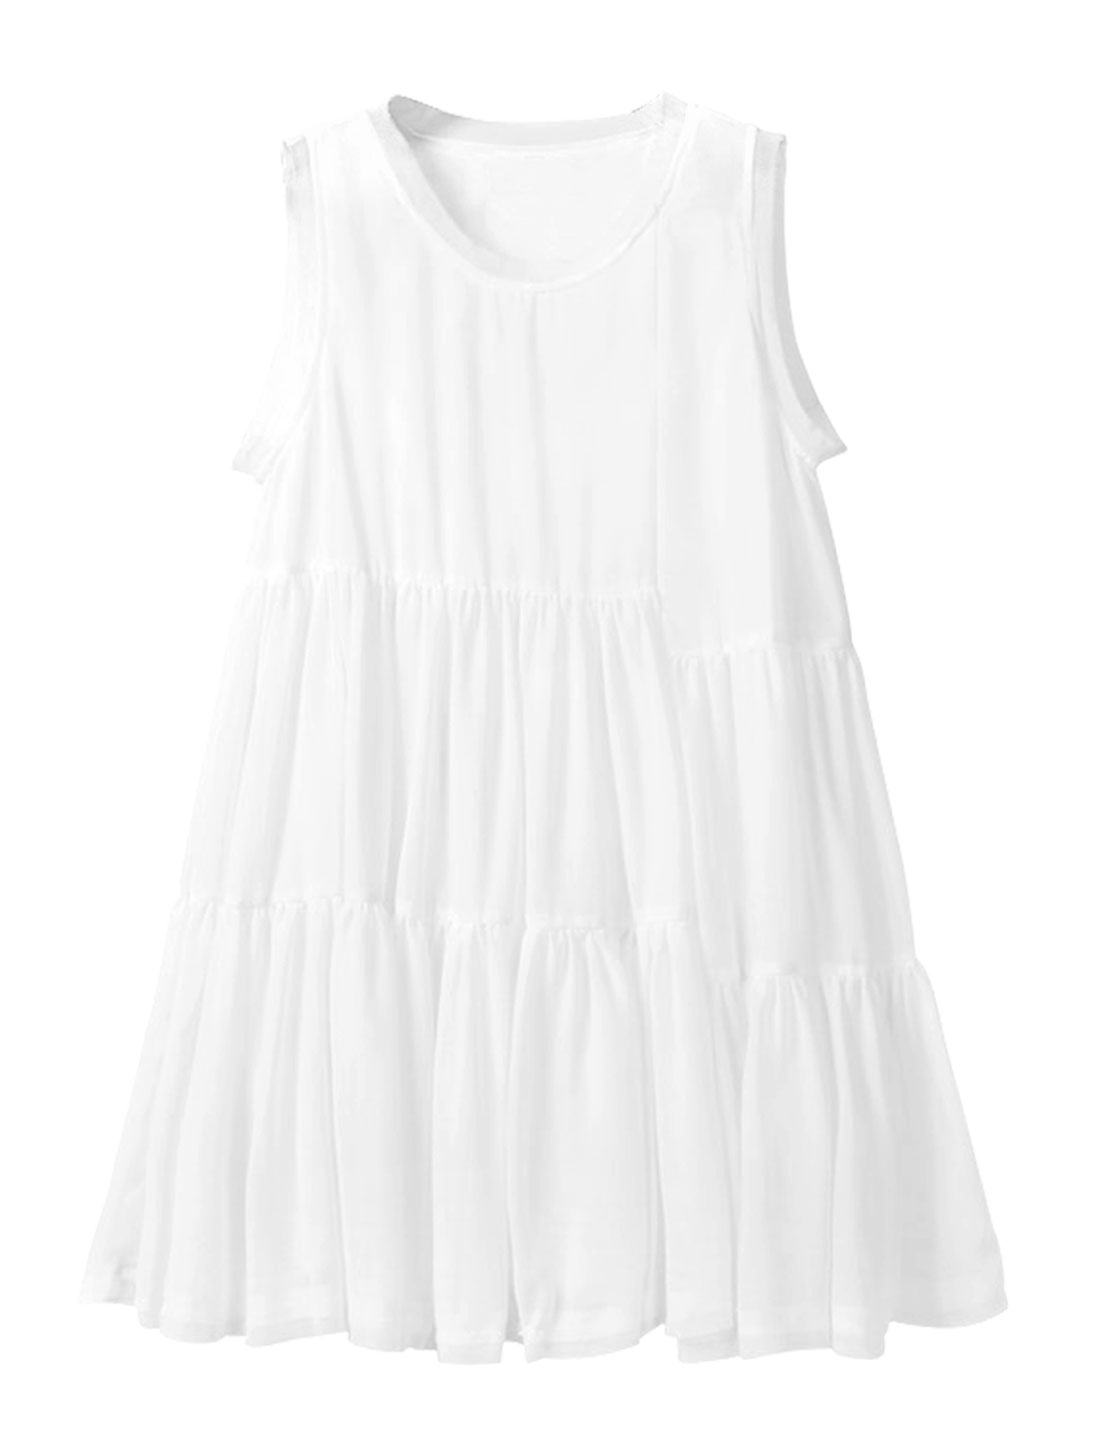 Lady Round Neck Sleeveless Lining Peasant Style Dress White S